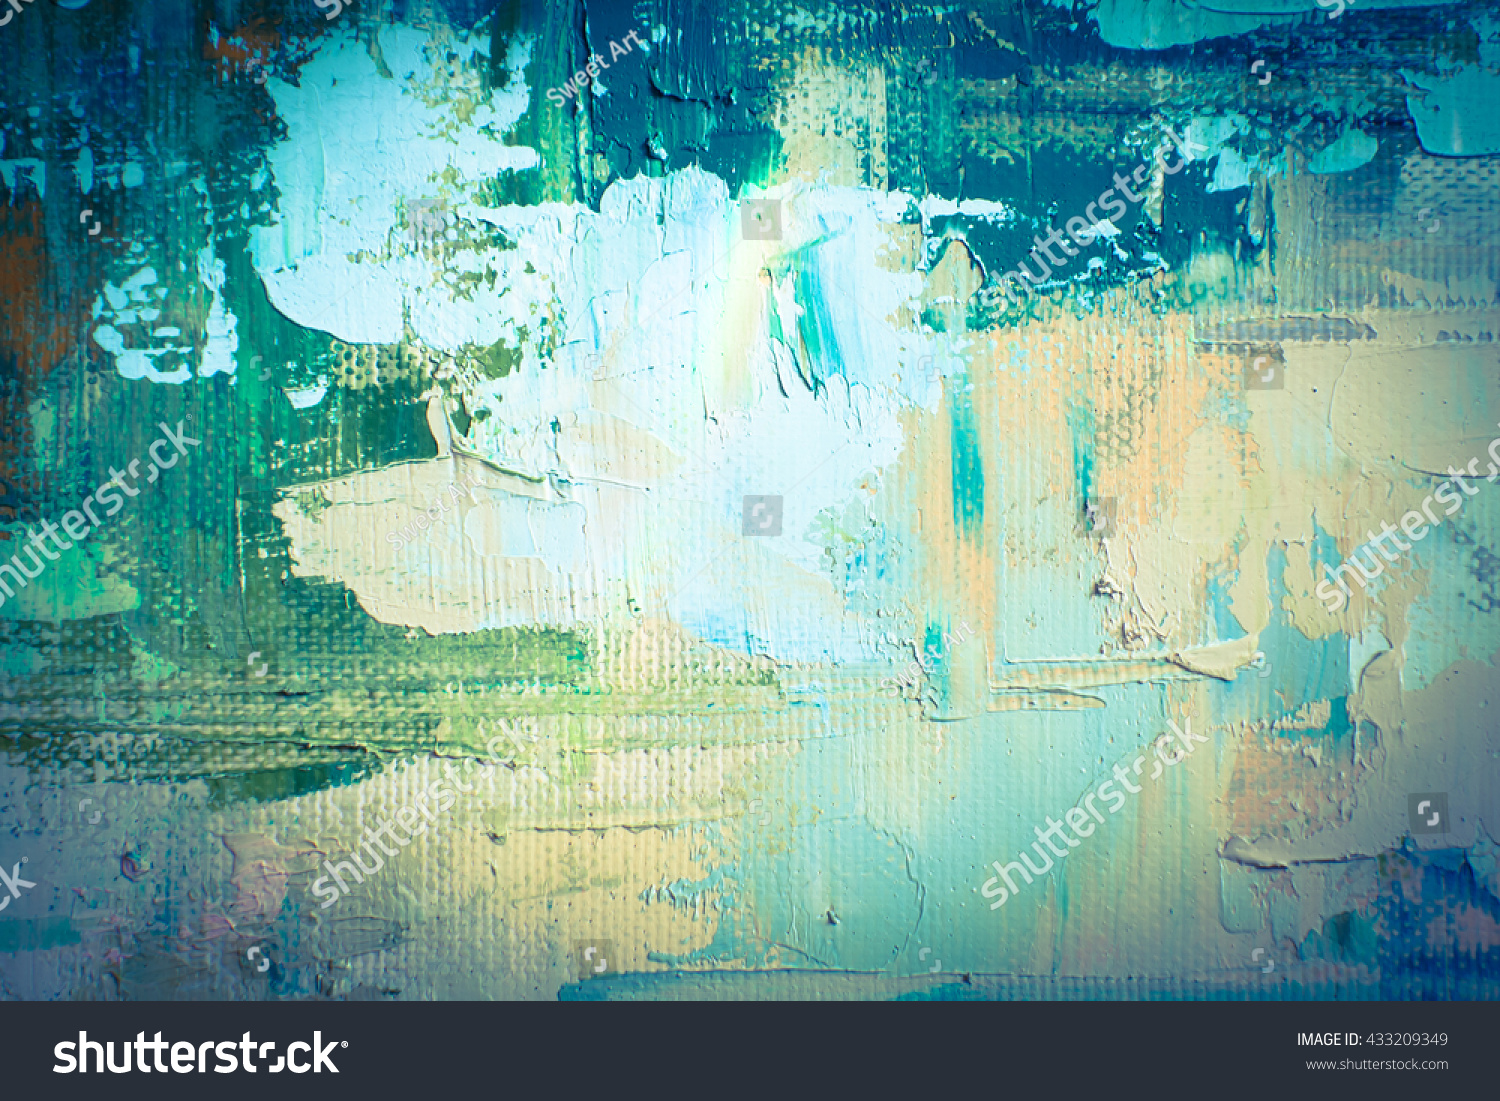 hand drawn oil painting abstract art stock illustration 433209349